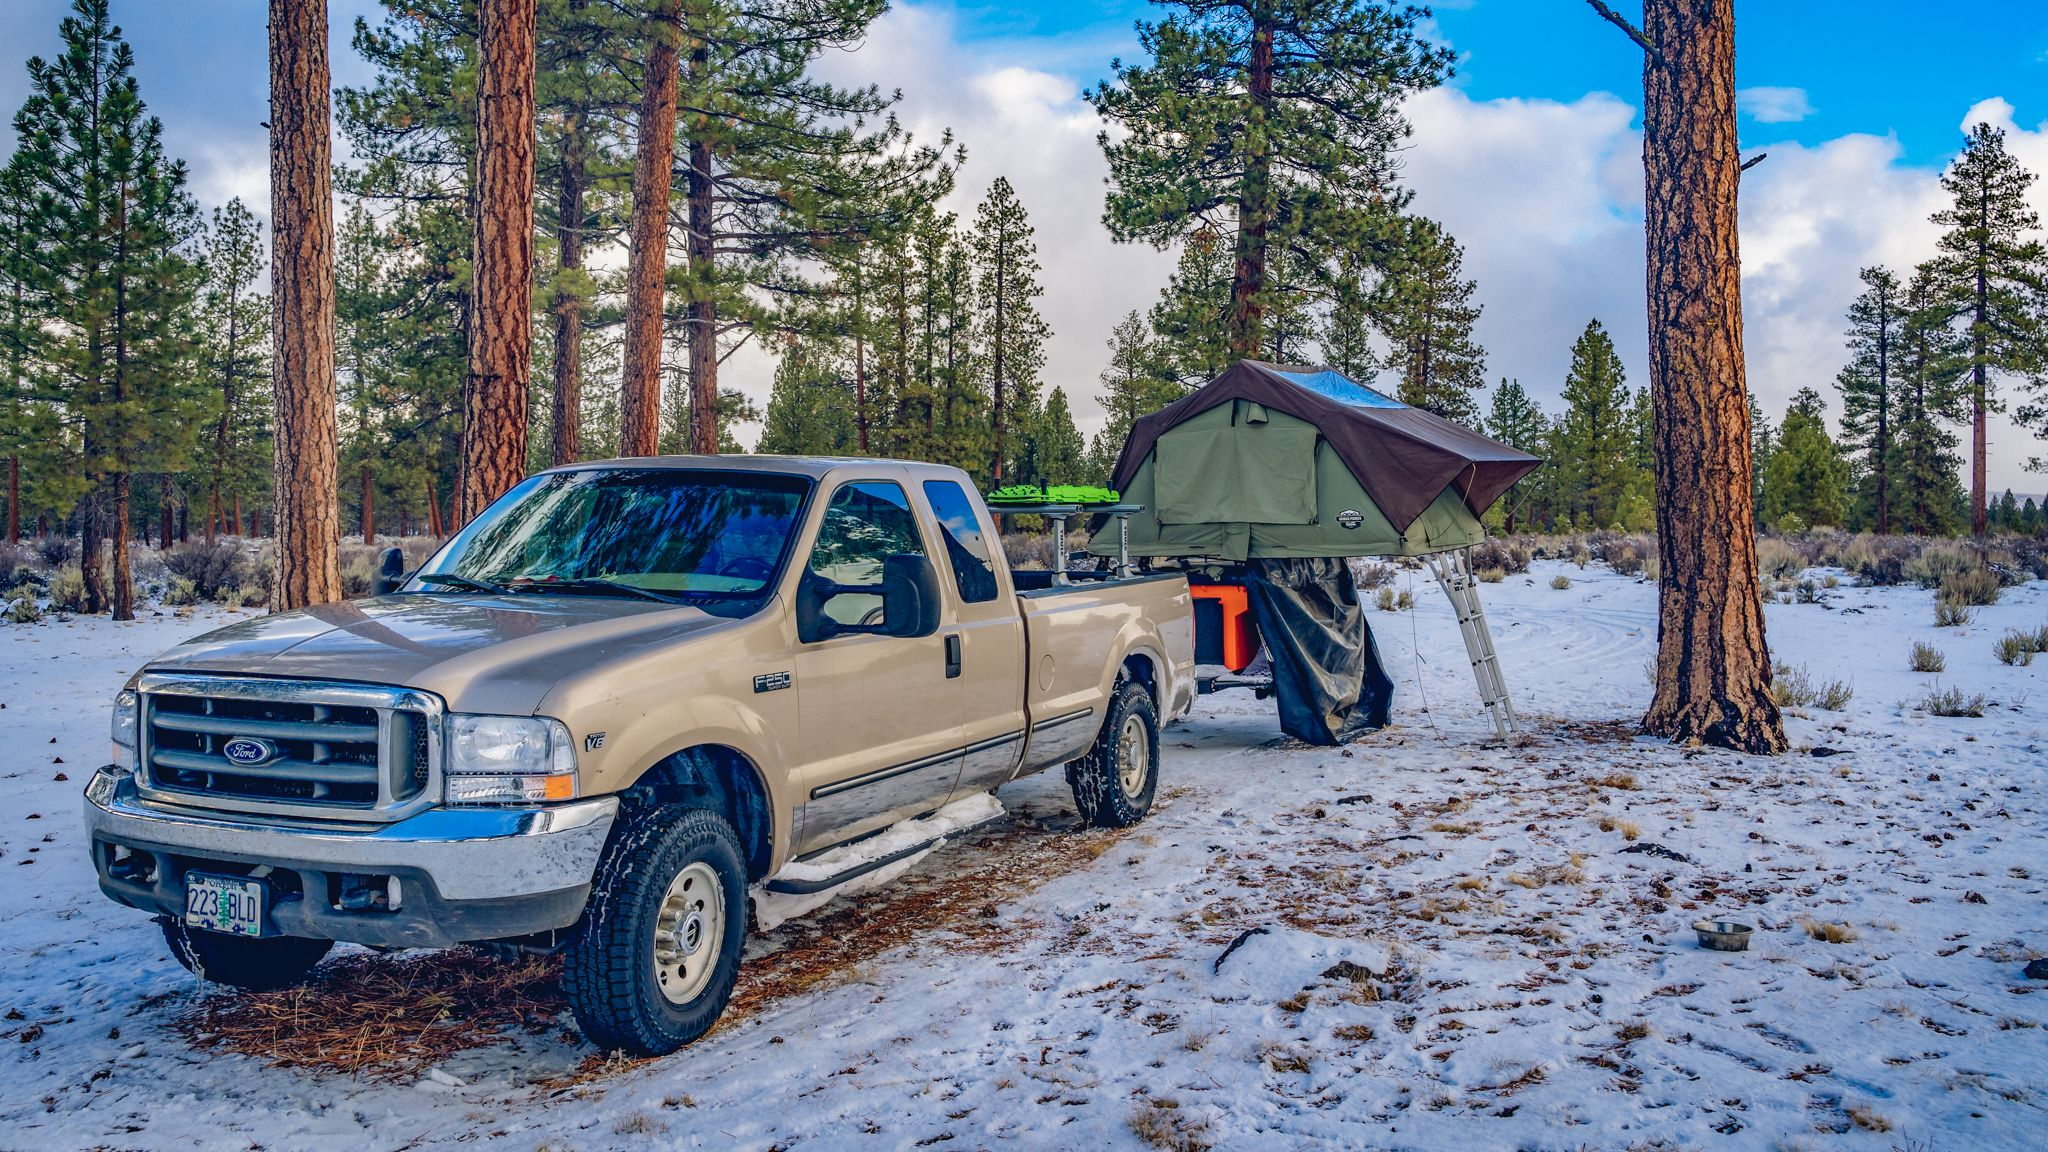 My Roof Top Tent Winter Camping Setup Winter Camping Roof Top Tent Snow Camping